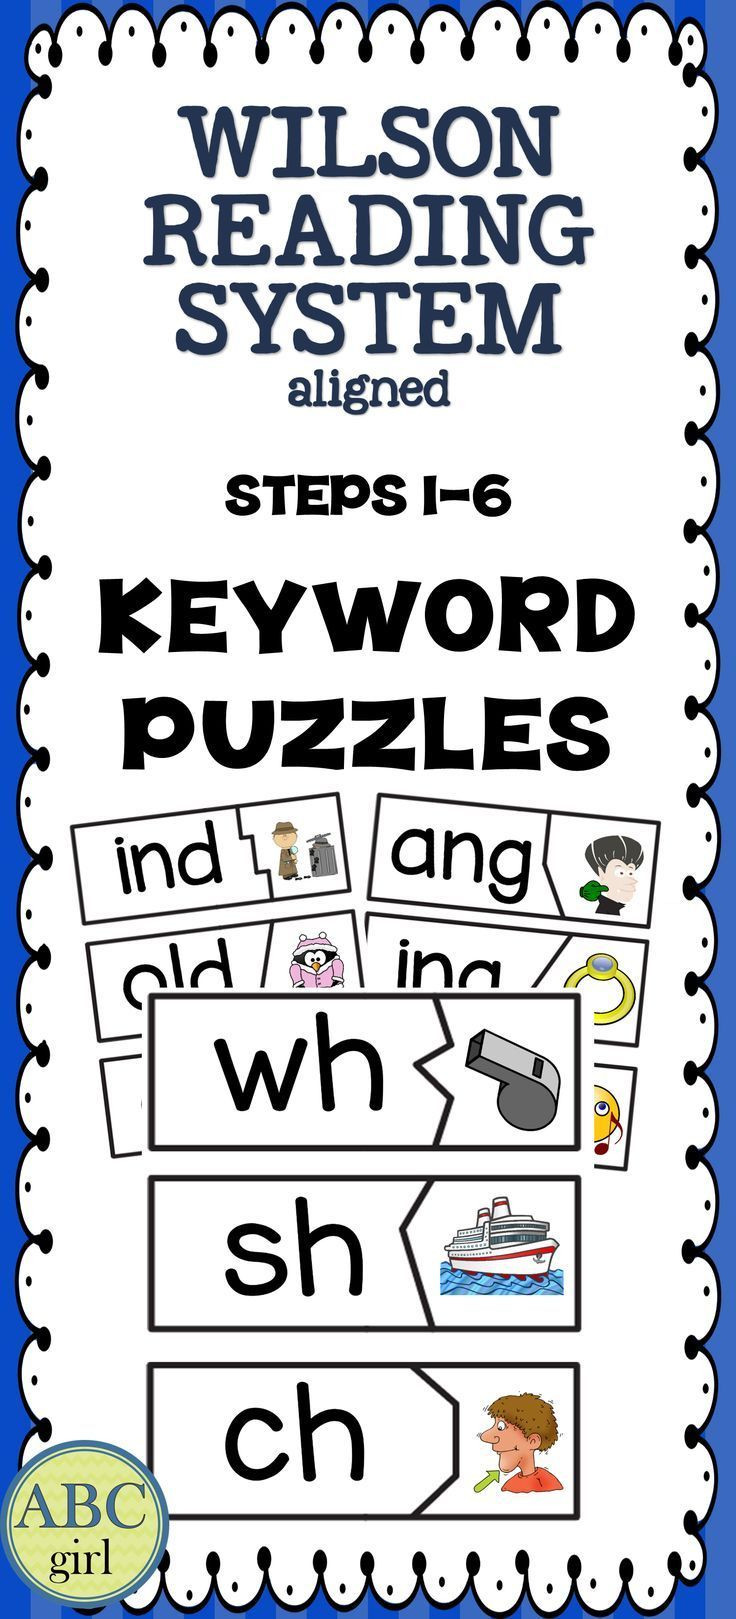 Wilson Reading Program Worksheets Reading System Keyword Matching Puzzles for Steps 1 6